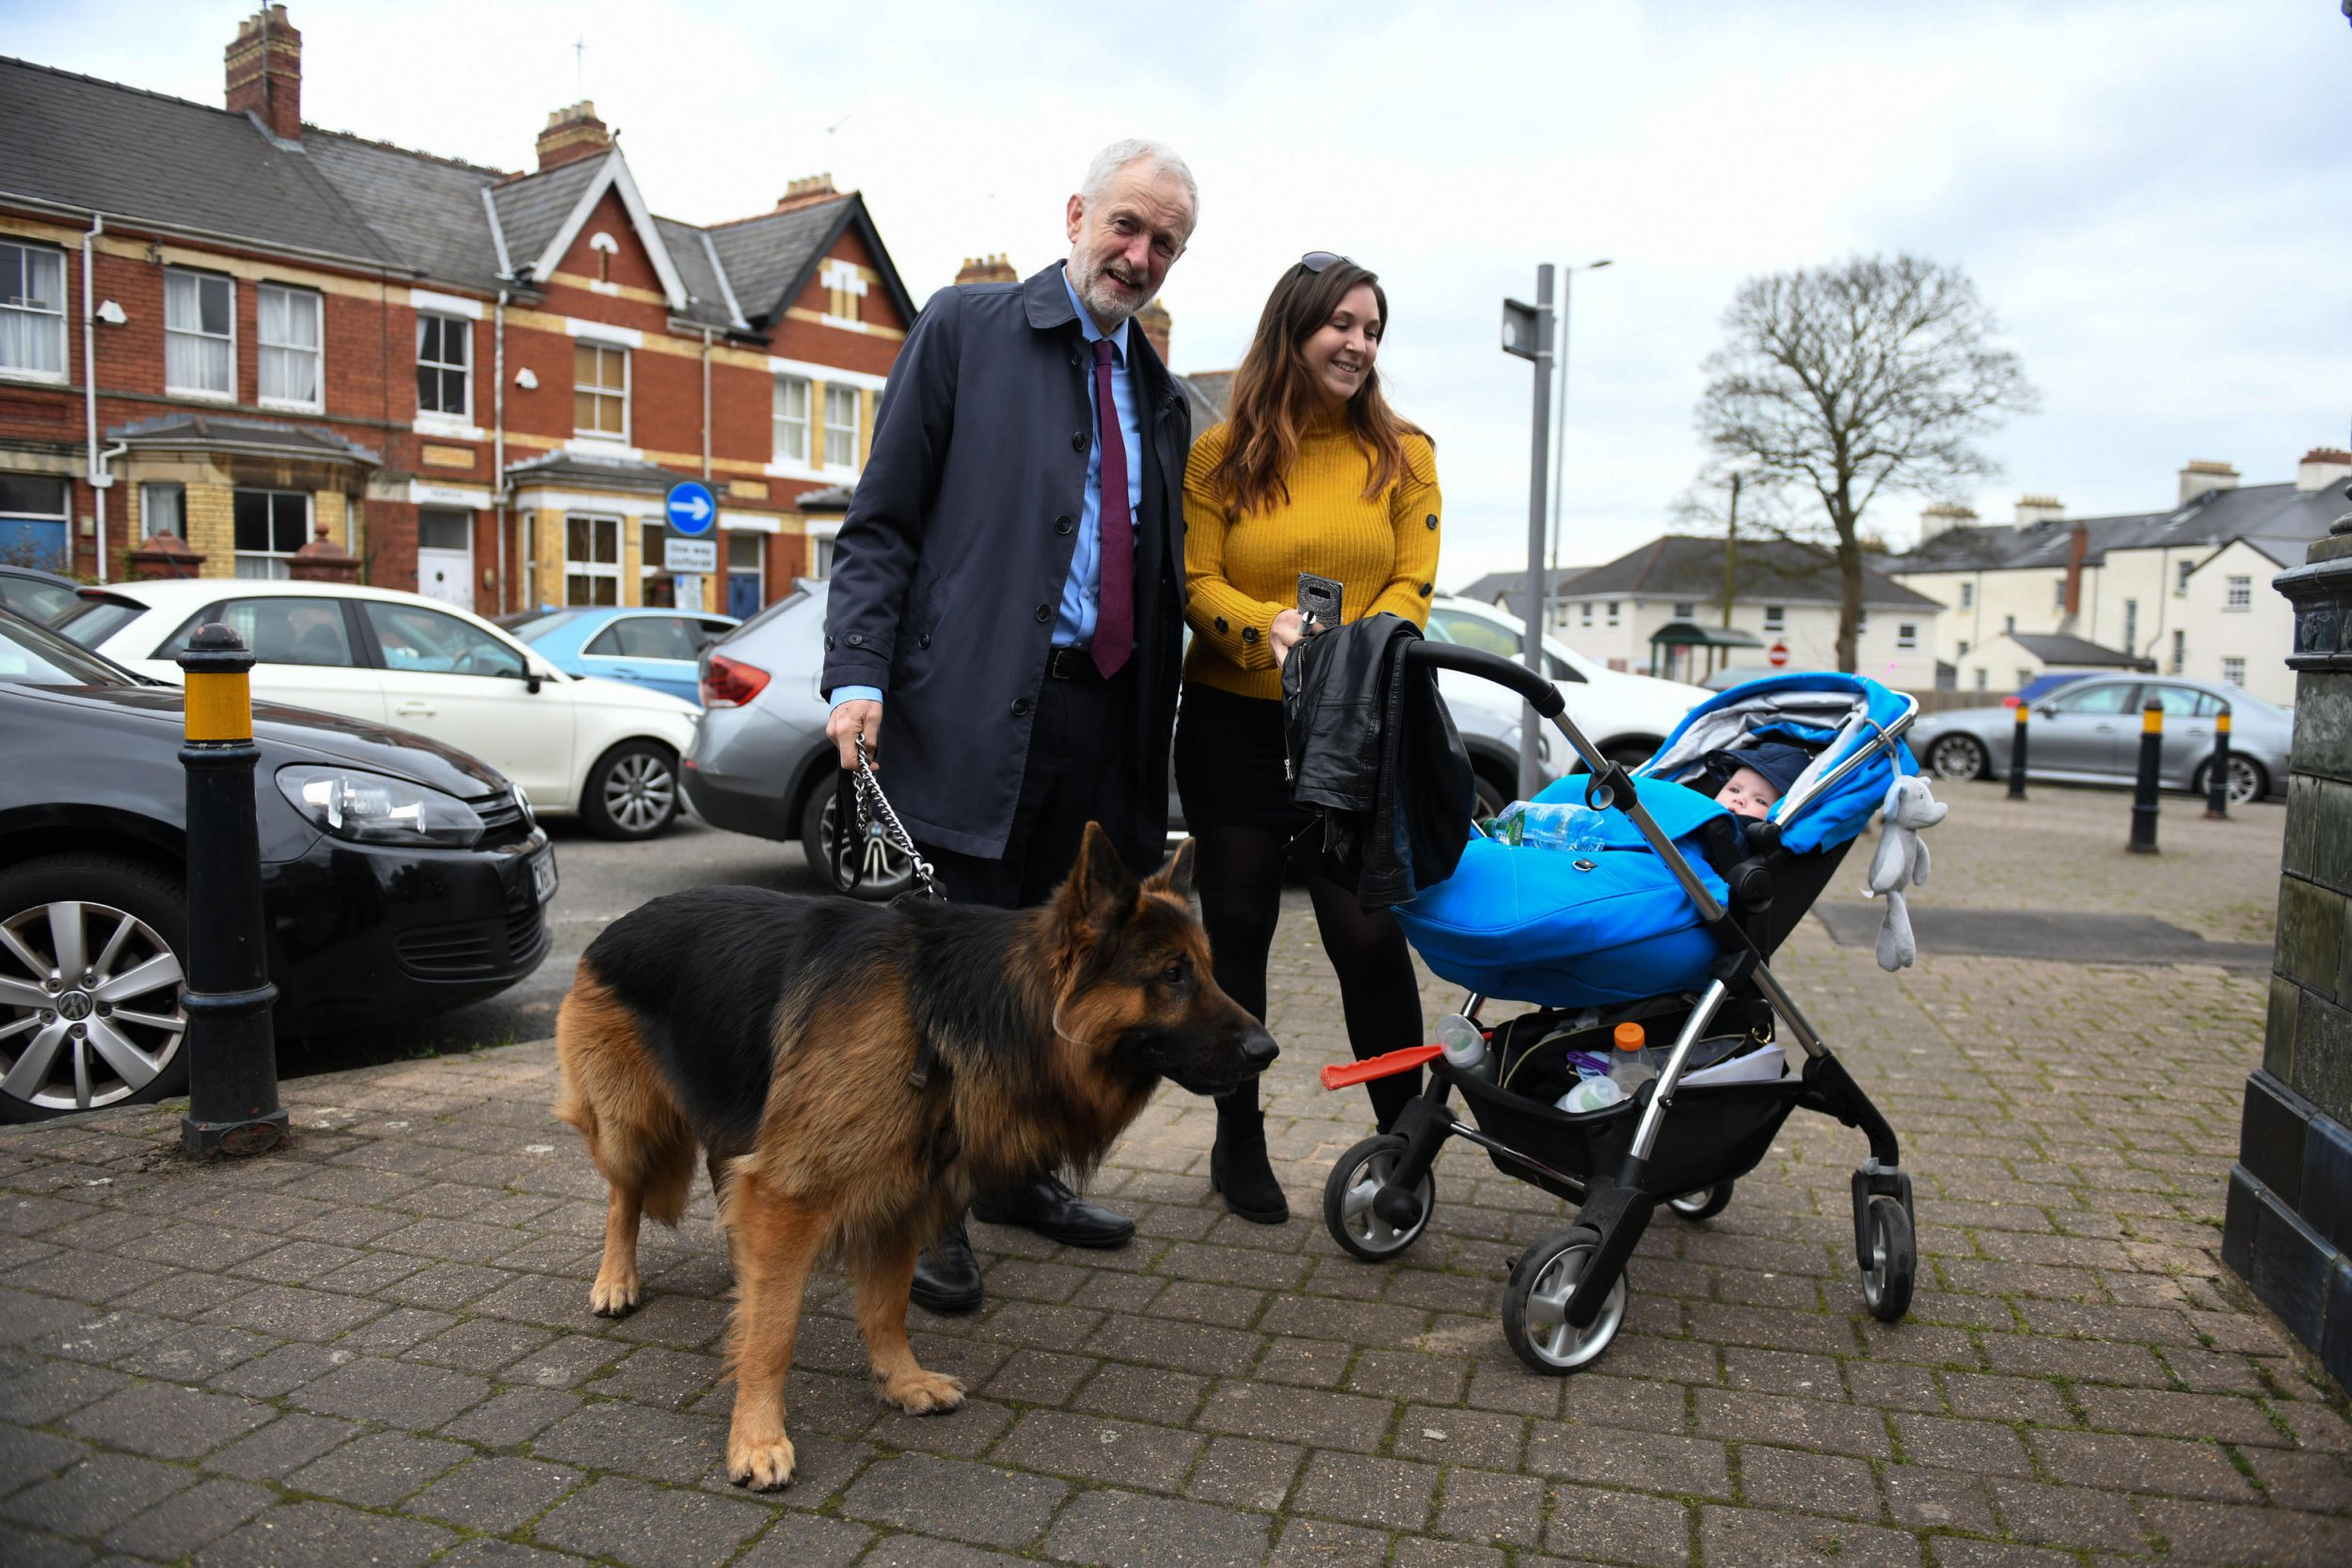 Alamy Live News. T0YCPK Newport, South Wales, UK. 22nd March 2019 Pictured is Jeremy Corbyn with an alsatian dog called Acer, at he meets members of the public after attending attending the funeral of Newport MP Paul Flynn at St Woolos Cathedral, Stow Hill, Newport, Wales. Credit : Robert Melen/Alamy Live News. This is an Alamy Live News image and may not be part of your current Alamy deal . If you are unsure, please contact our sales team to check.